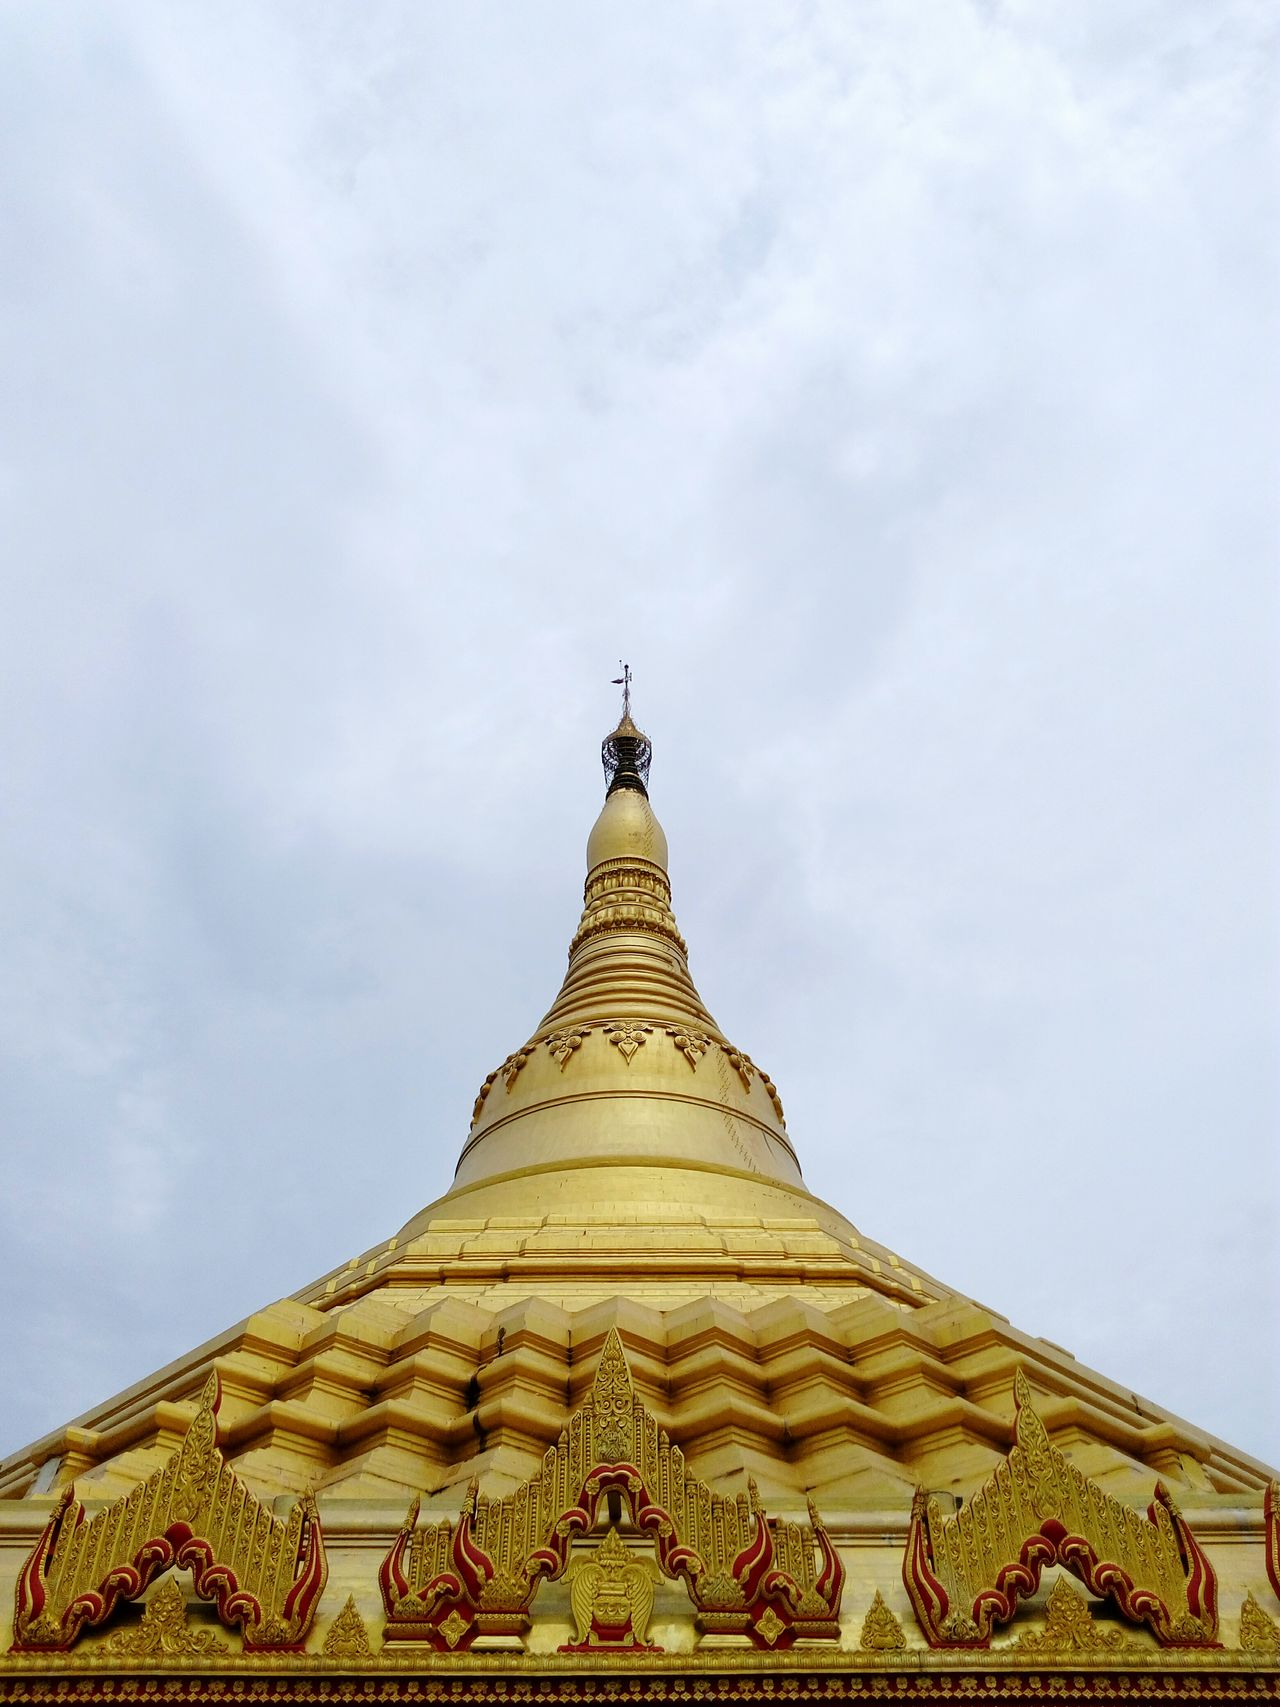 Naturephotography Sky Best Class Ever  Famous Places Buddhism Travel Photography International Landmark Pagoda India_clicks Famous Landmarks Buddhism Temple Ornate Design Buddhism Culture Gold Colored Dome Pagoda India Pagodamumbai Pagoda